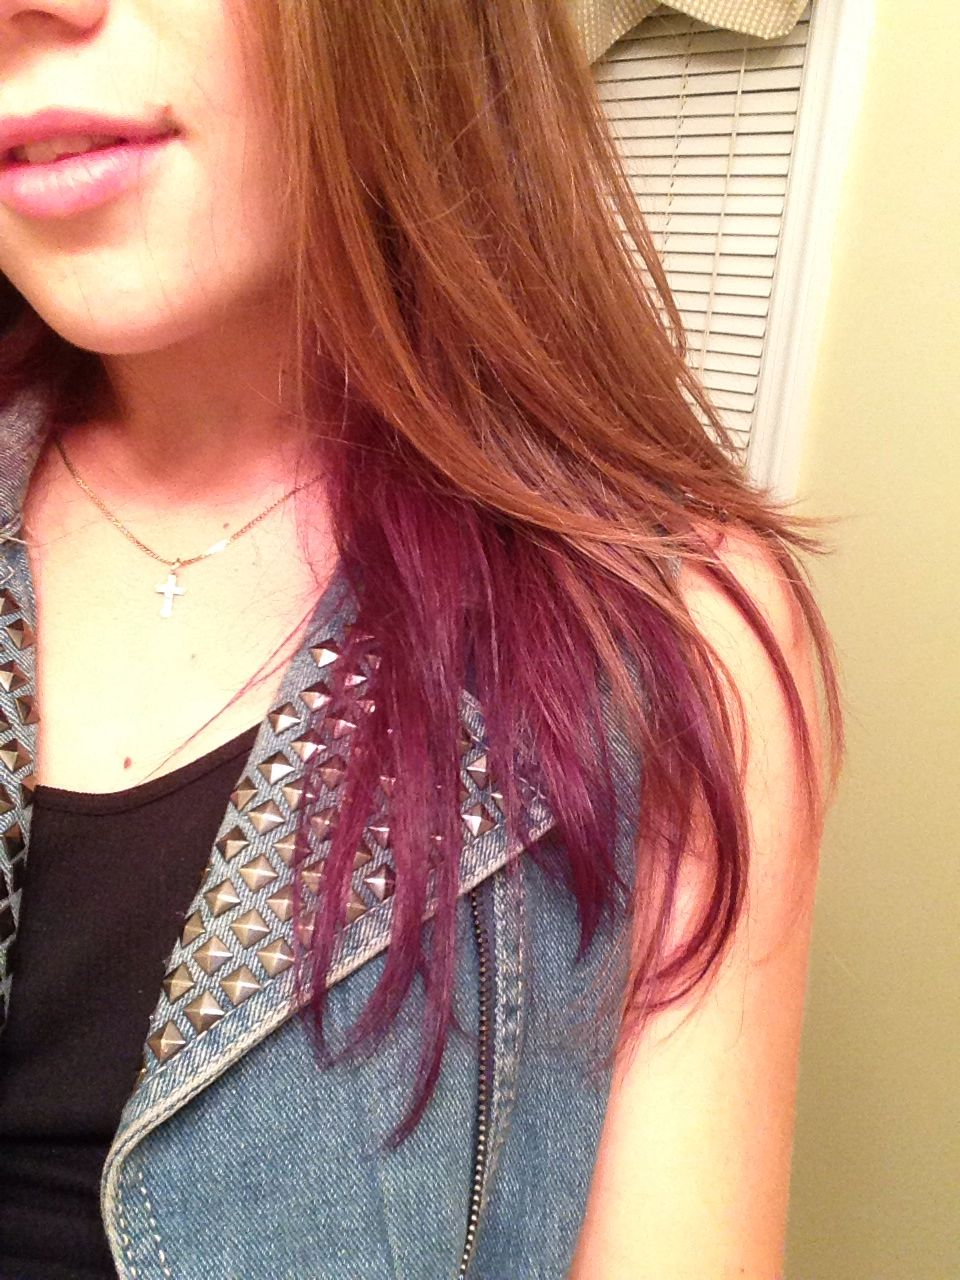 Splat Lusty Lavender hair color with no bleach. I've been